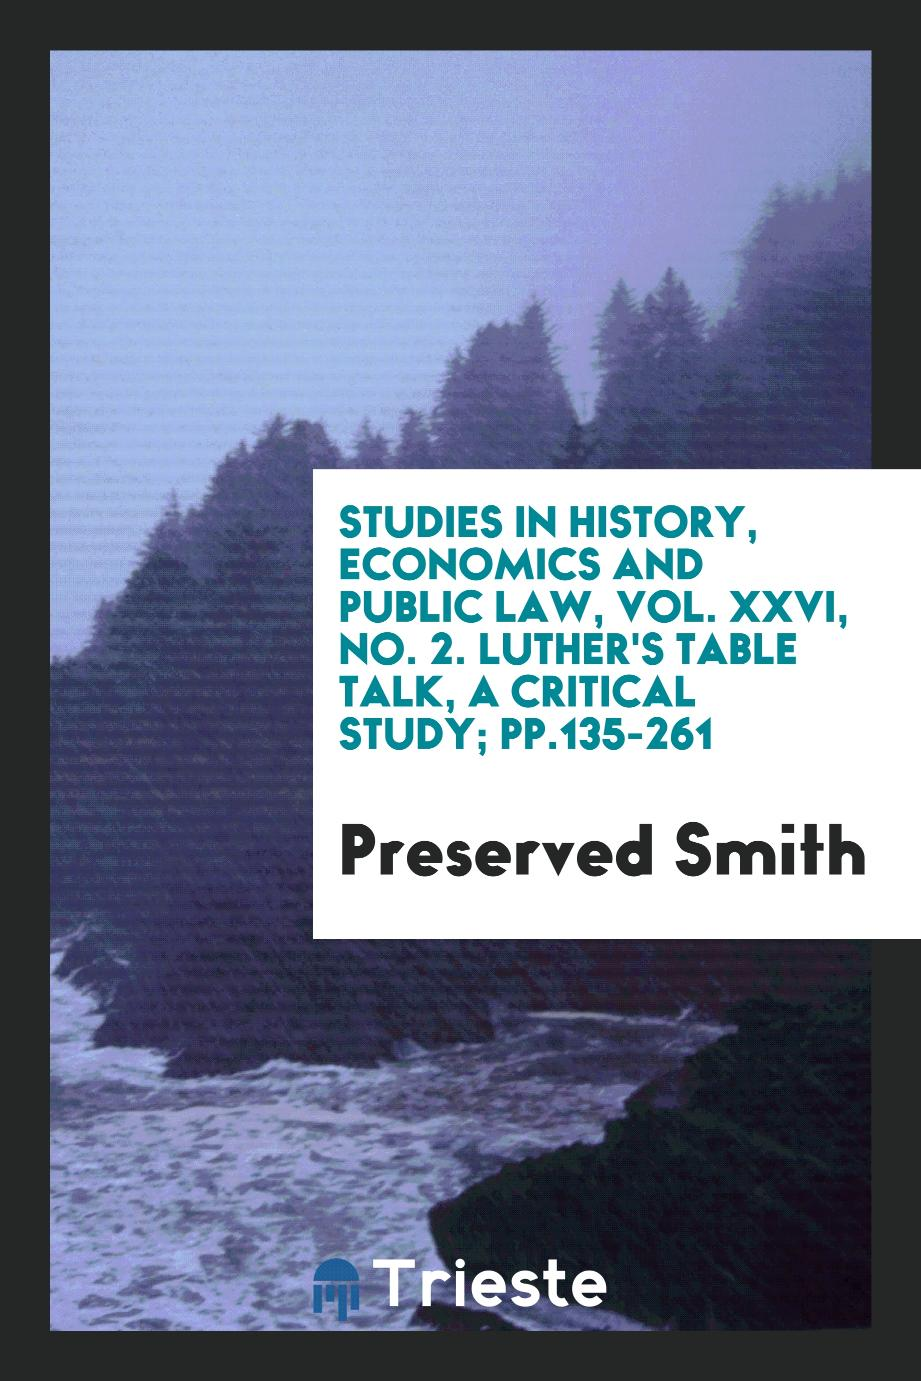 Studies in History, Economics and Public Law, Vol. XXVI, No. 2. Luther's Table talk, a critical study; pp.135-261